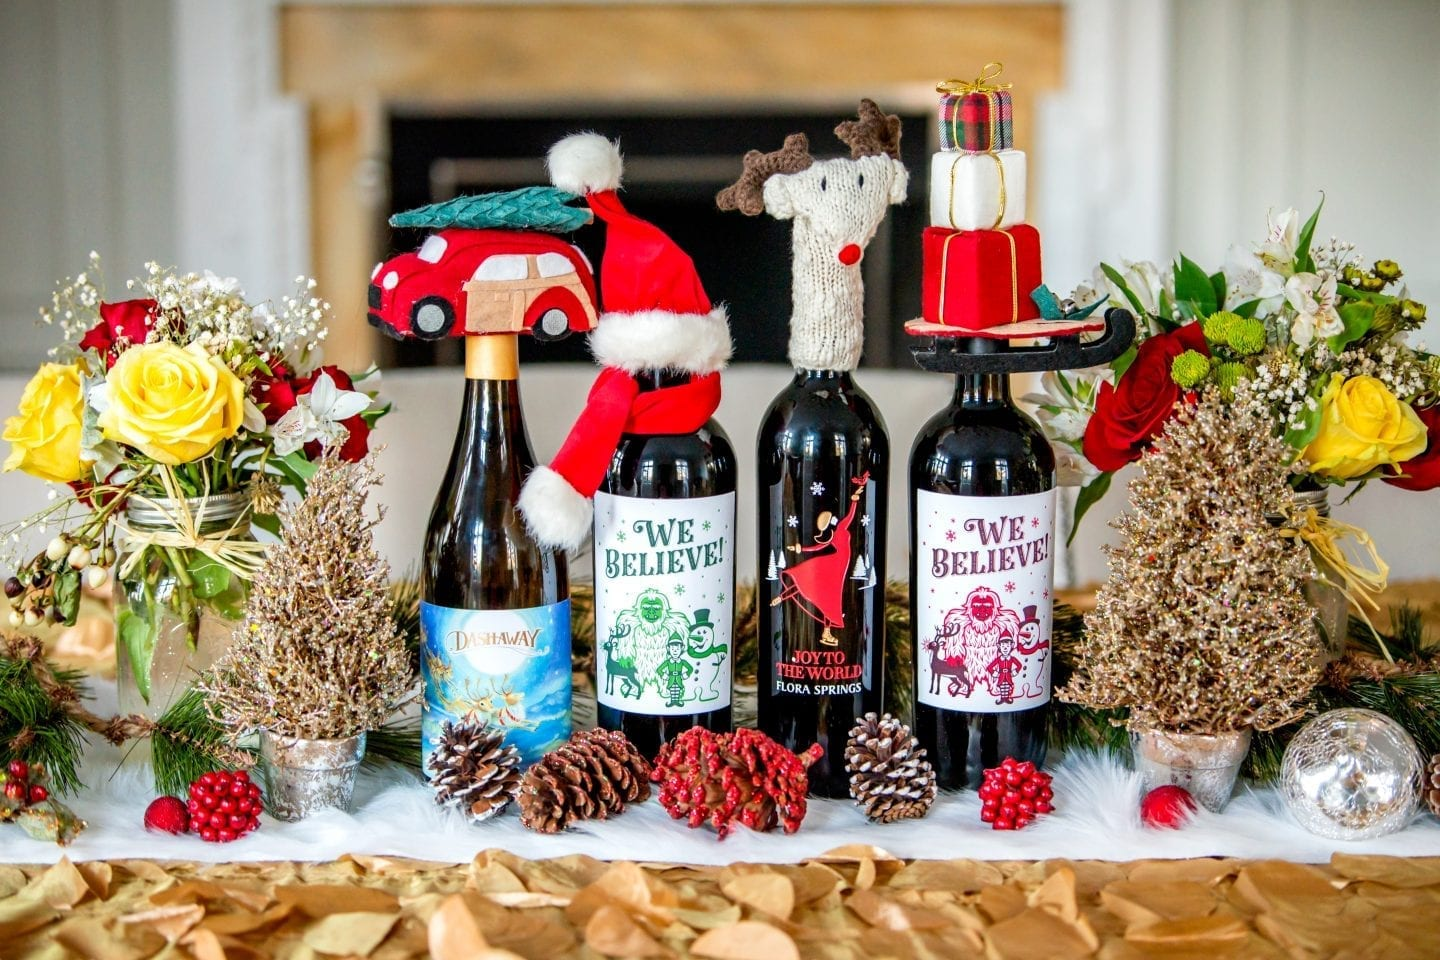 Christmas Party Themes to Make the Holidays Fun